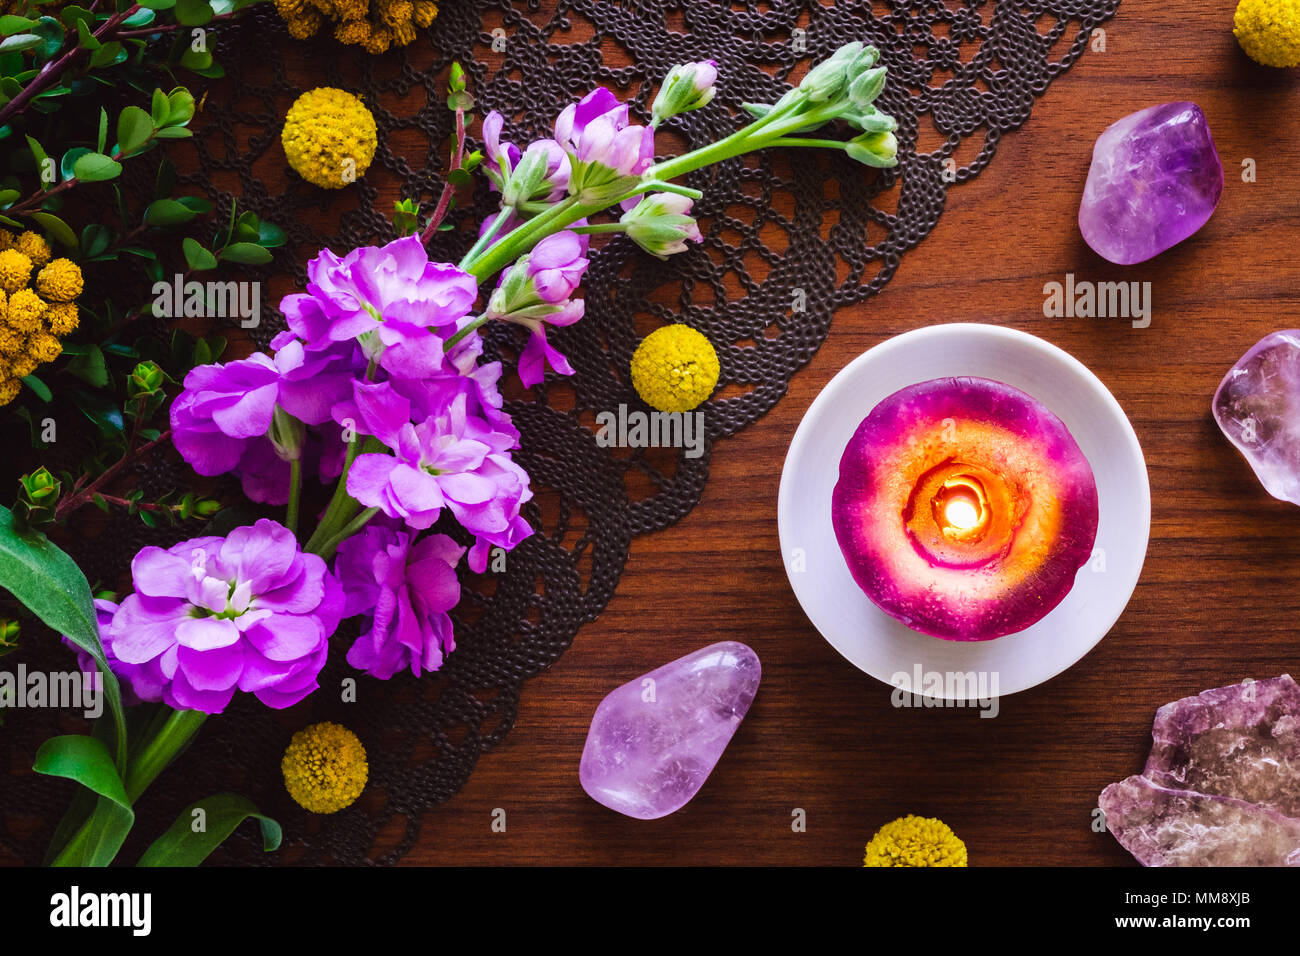 Purple Stones, Flowers and Candle on Teak Table Stock Photo